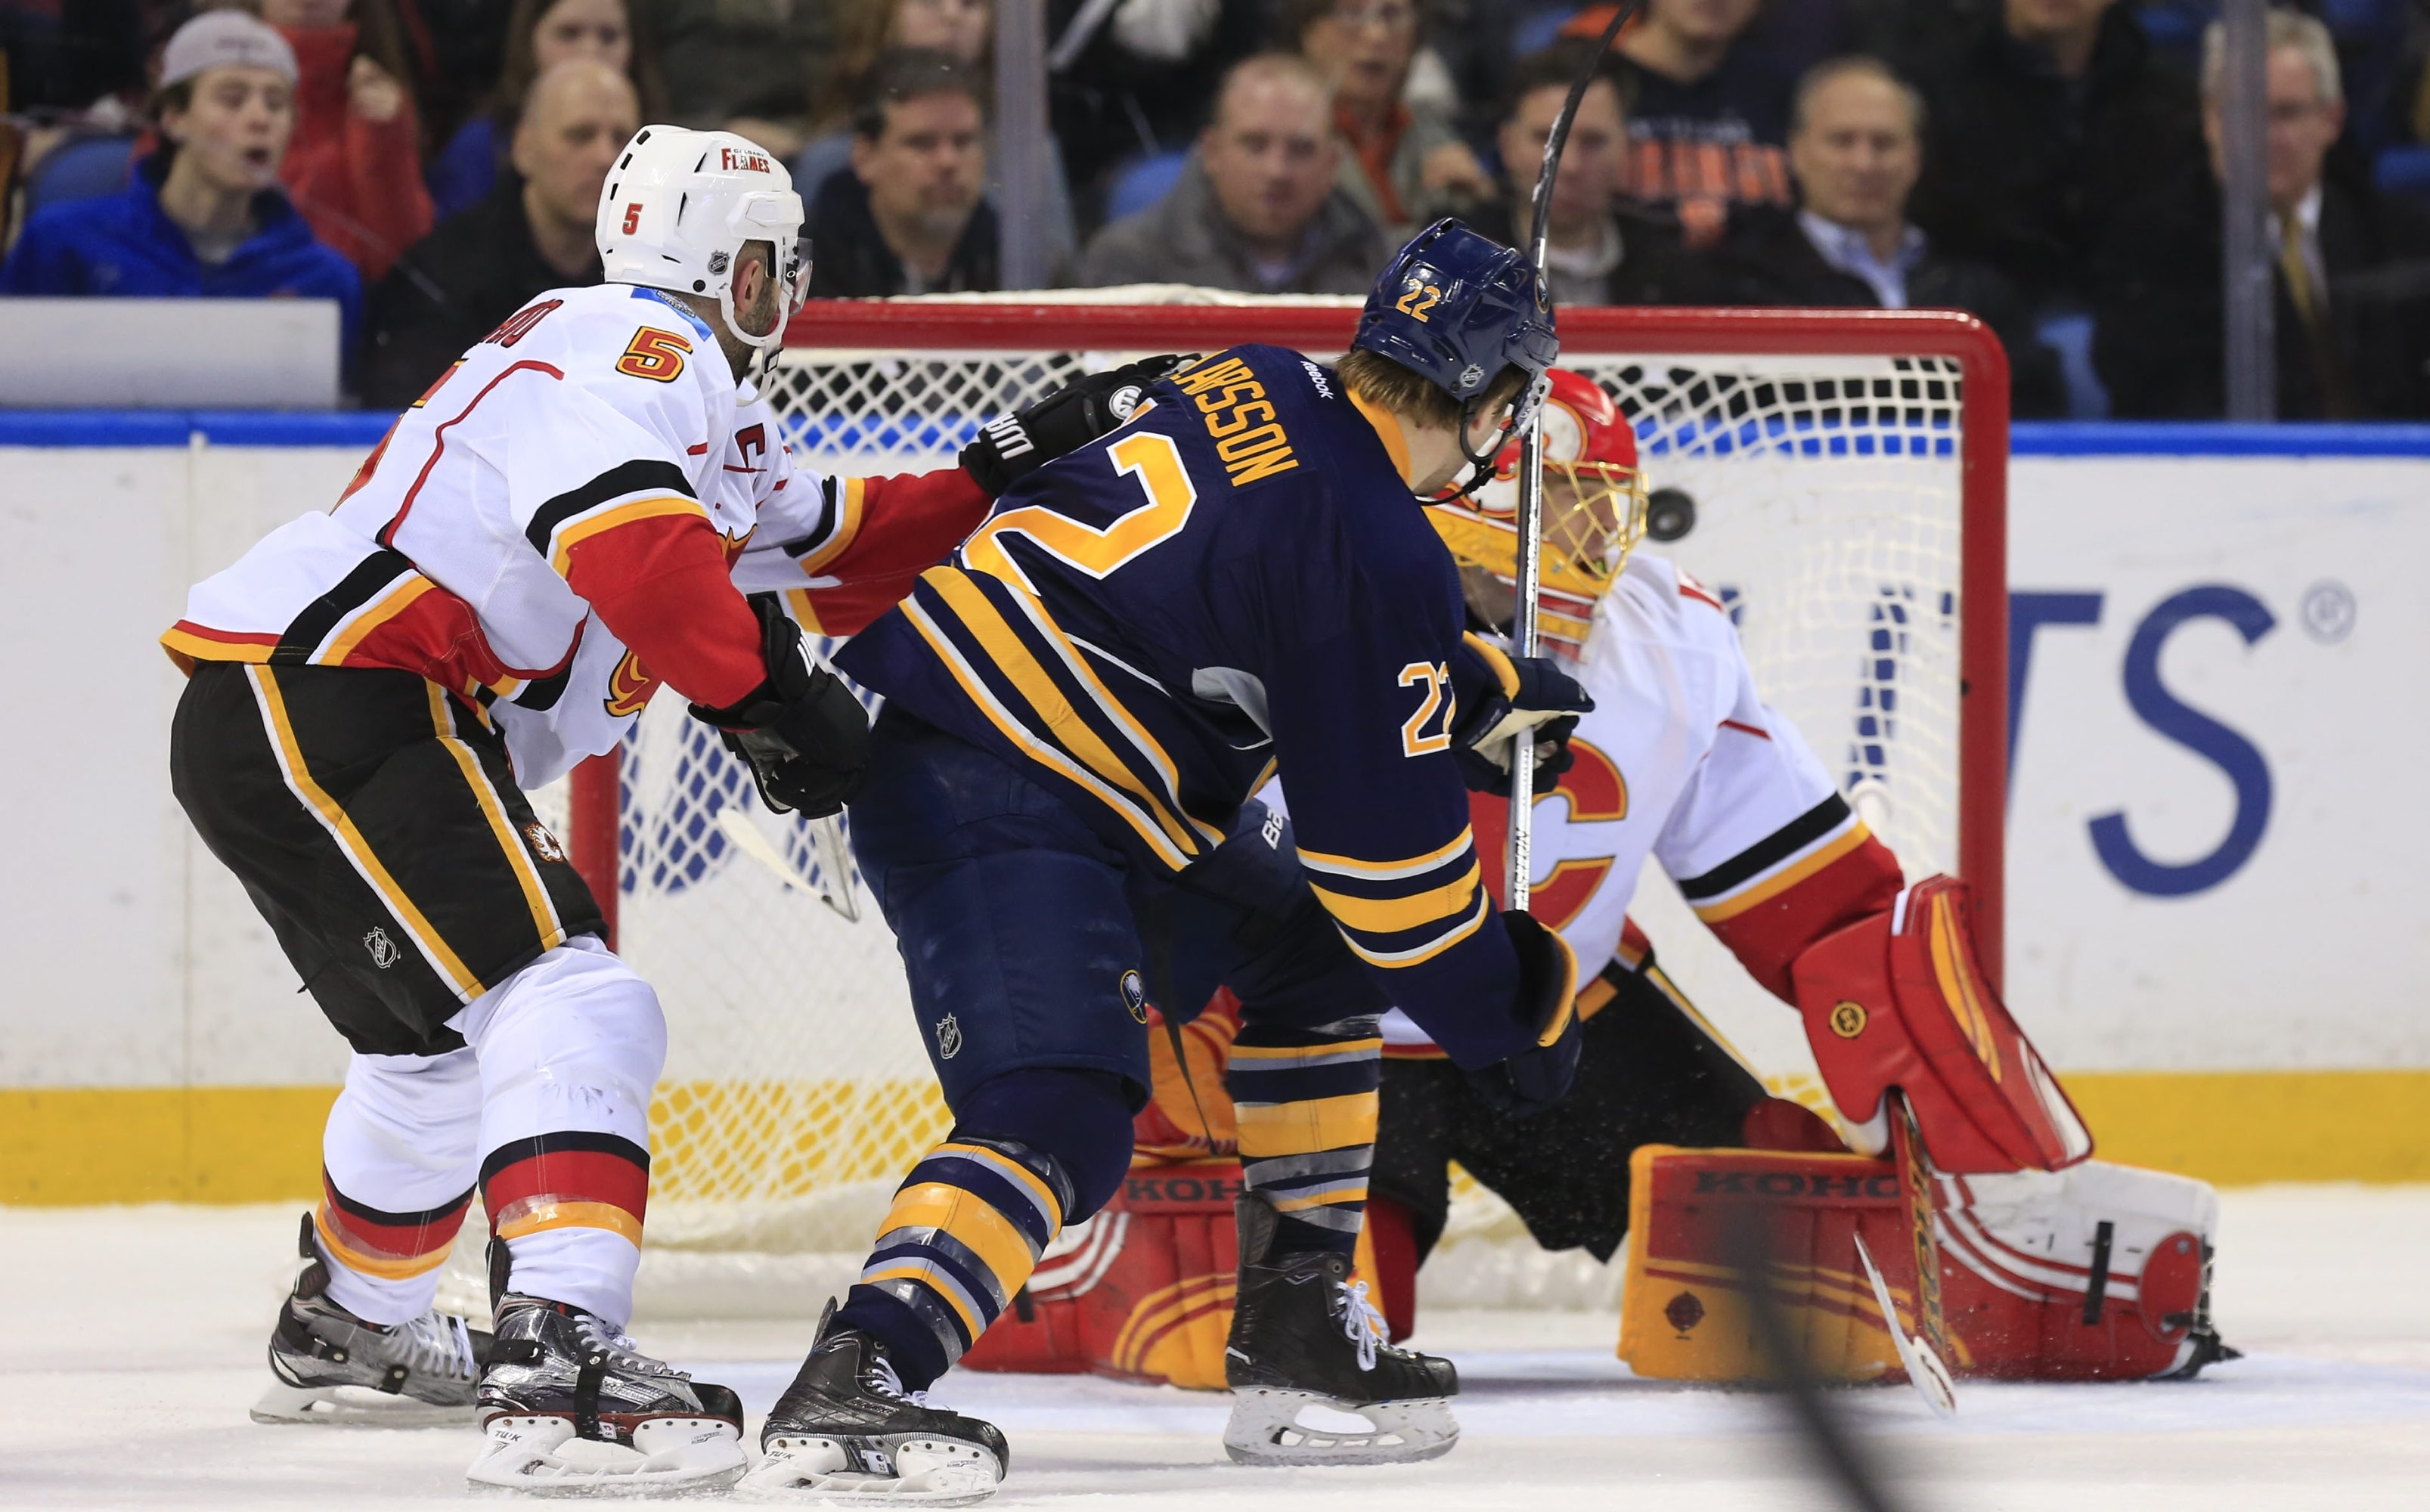 Sabre forward Johan Larsson scores the game-winning goal against Calgary during the third period Sunday.